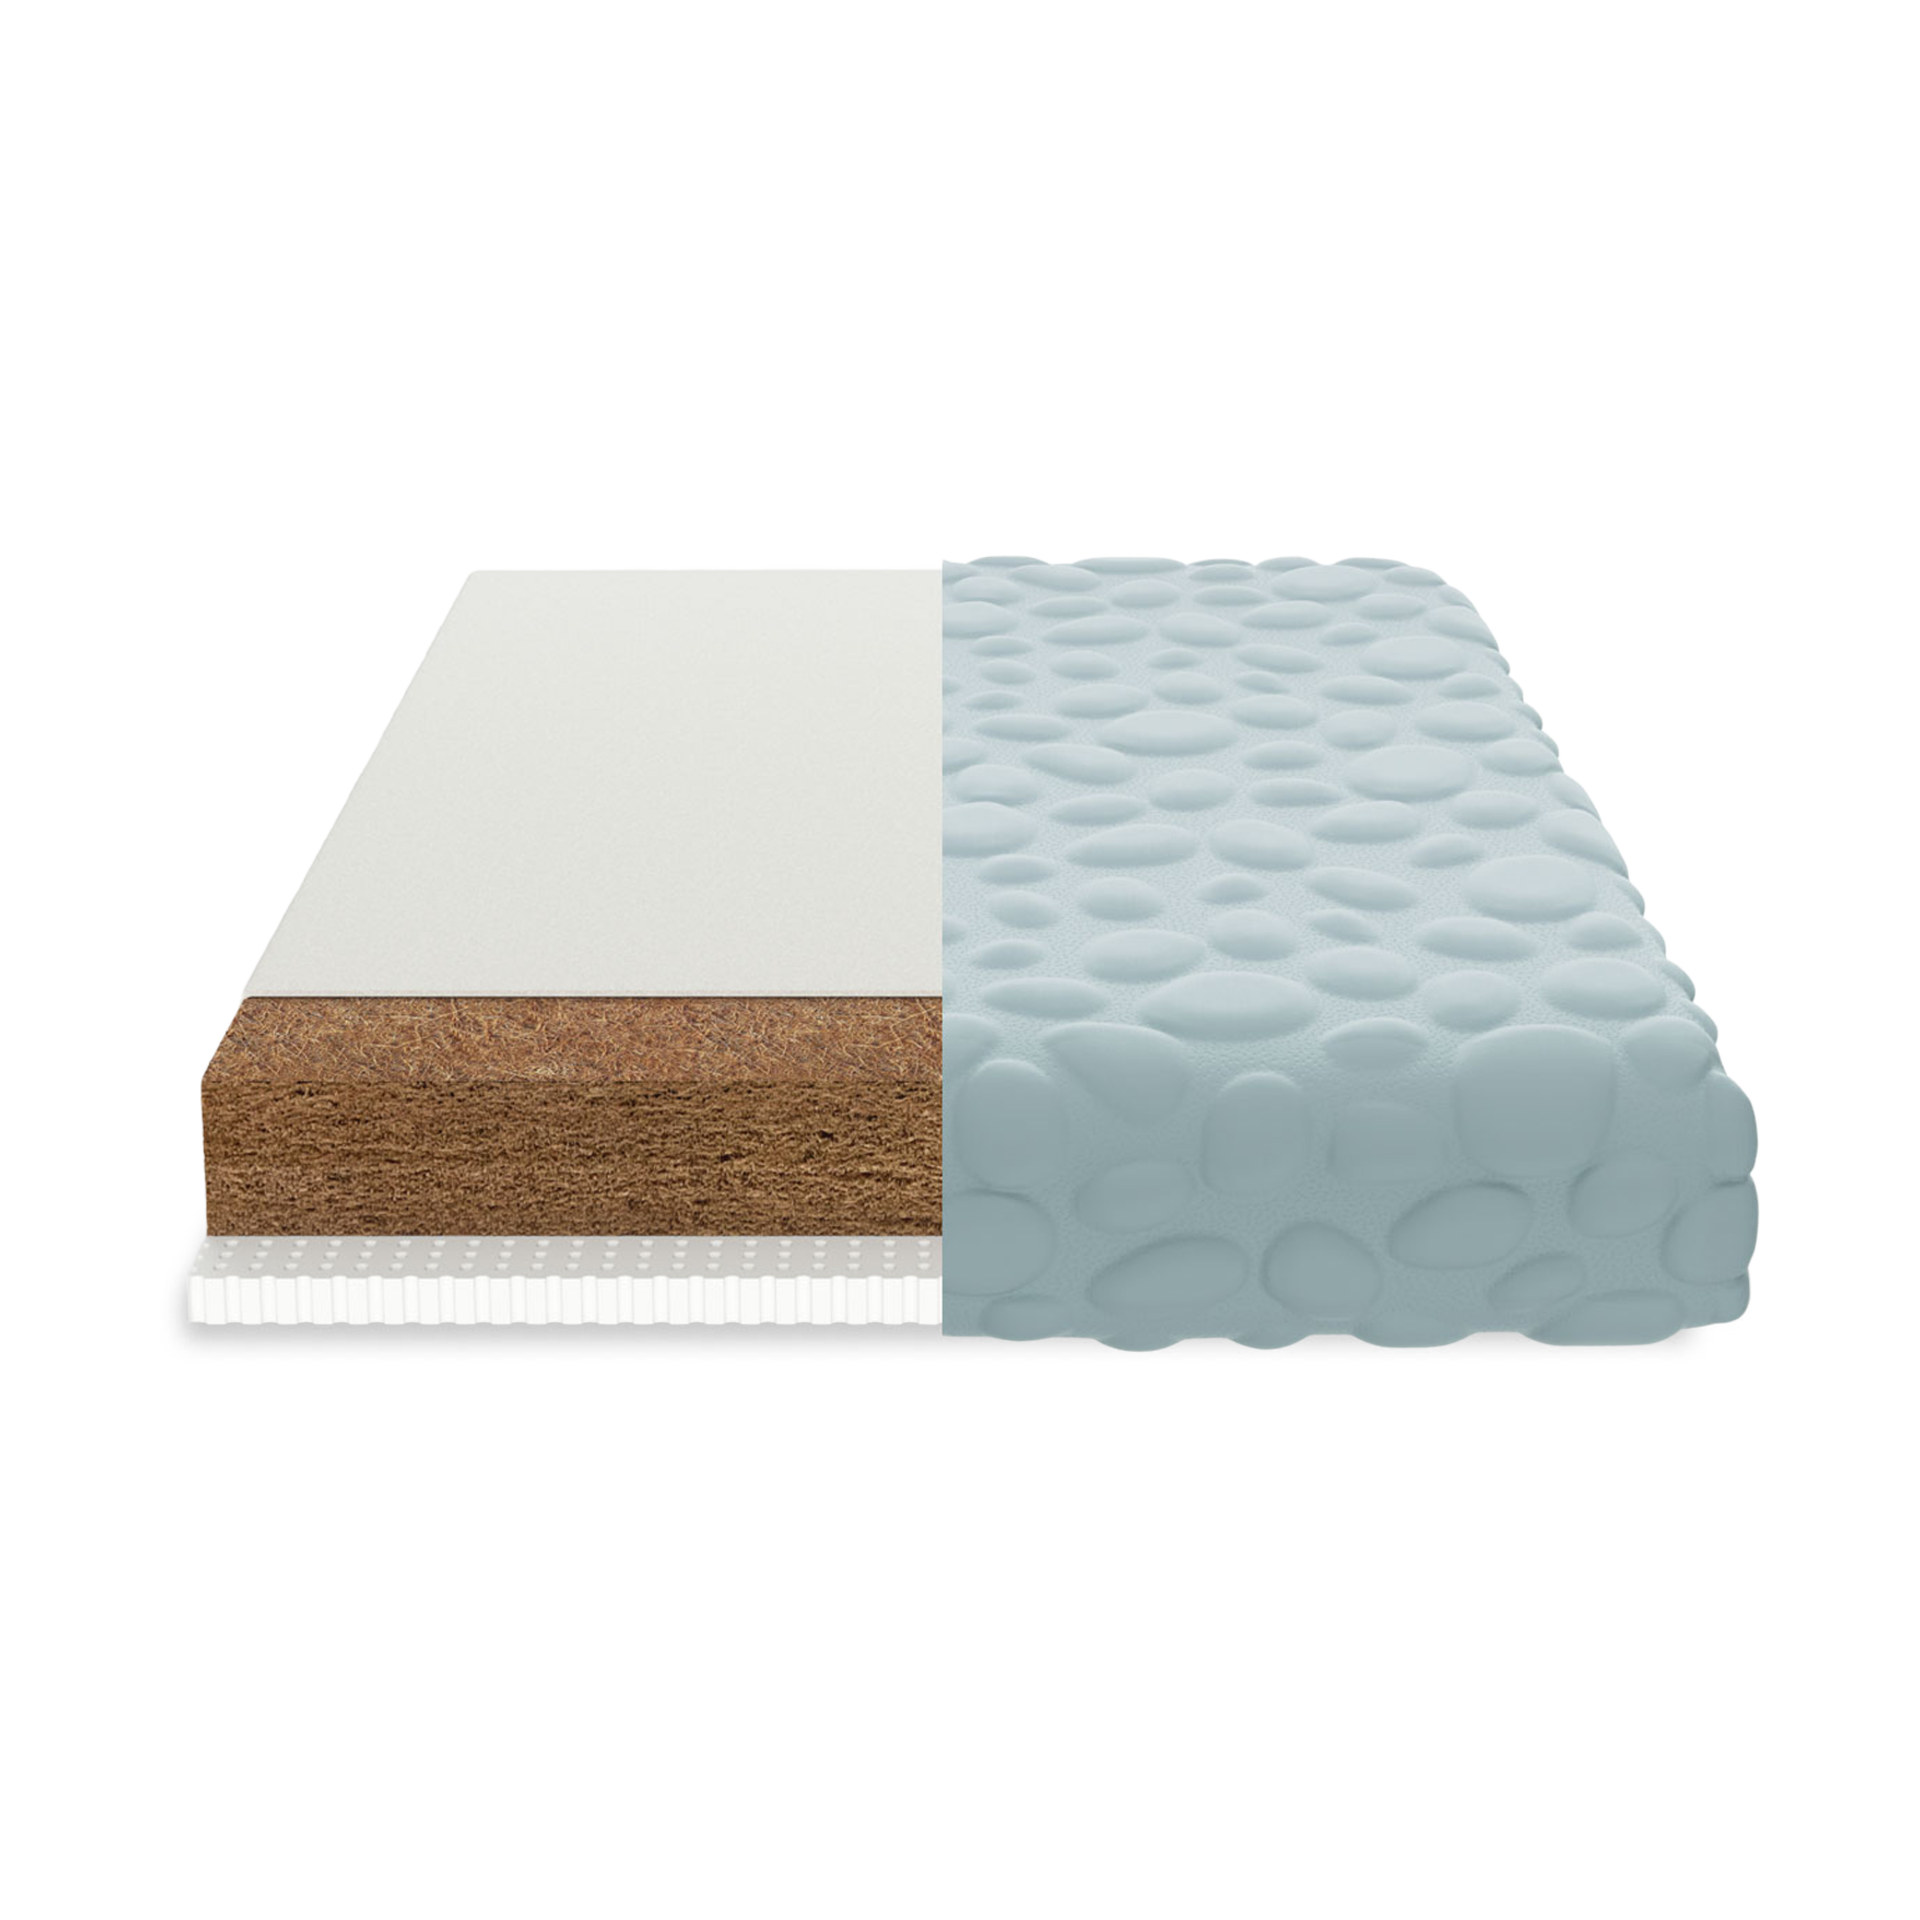 Sea Glass Nook Sleep Pebble Air Ultra Lite Crib Mattress